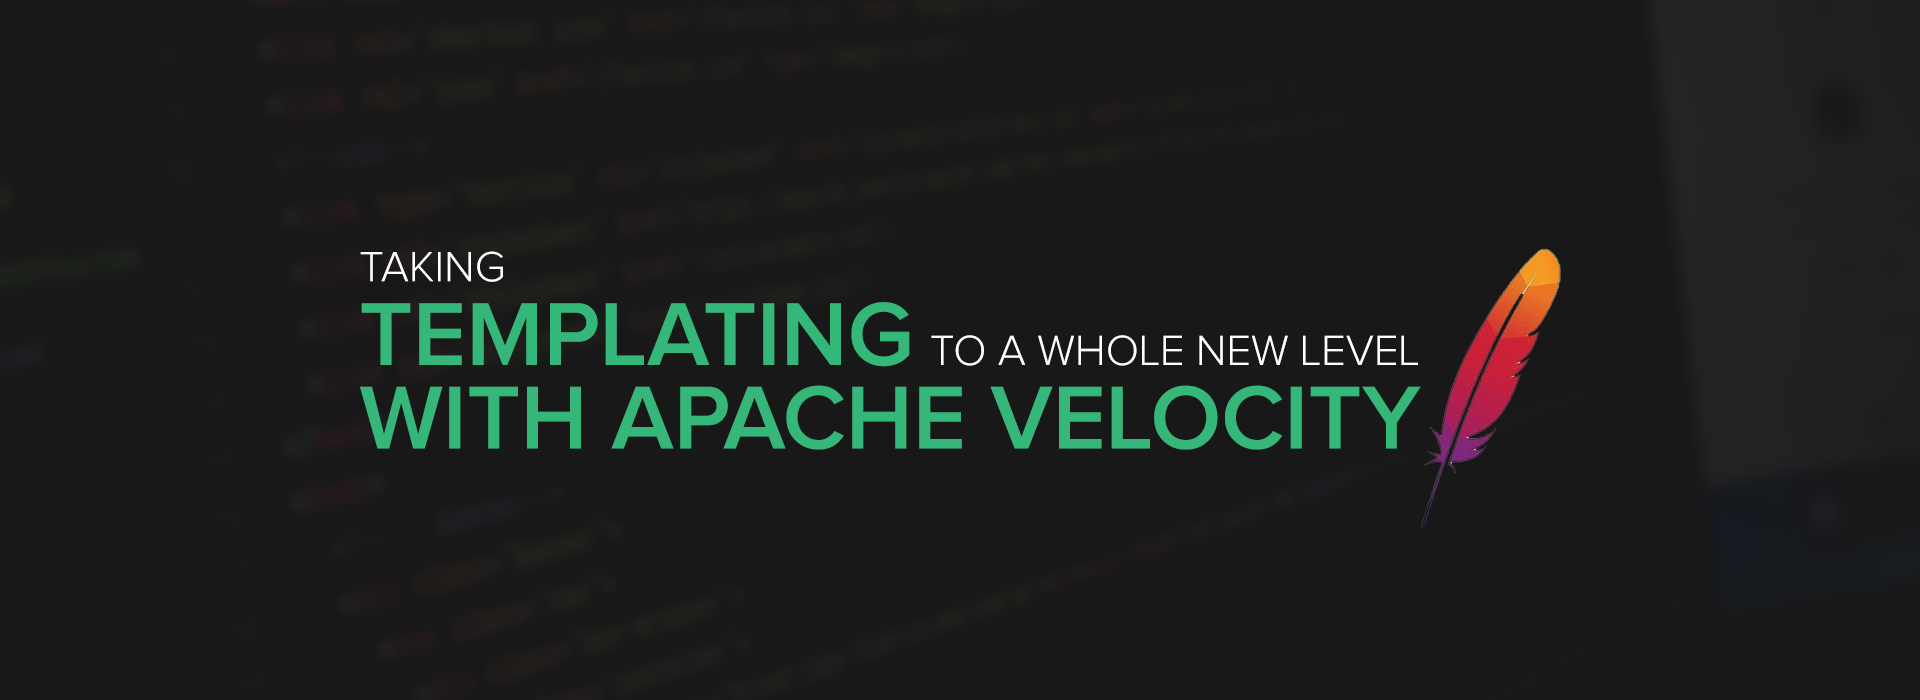 Taking-templating-to-a-whole-new-level-with-Apache-Velocity